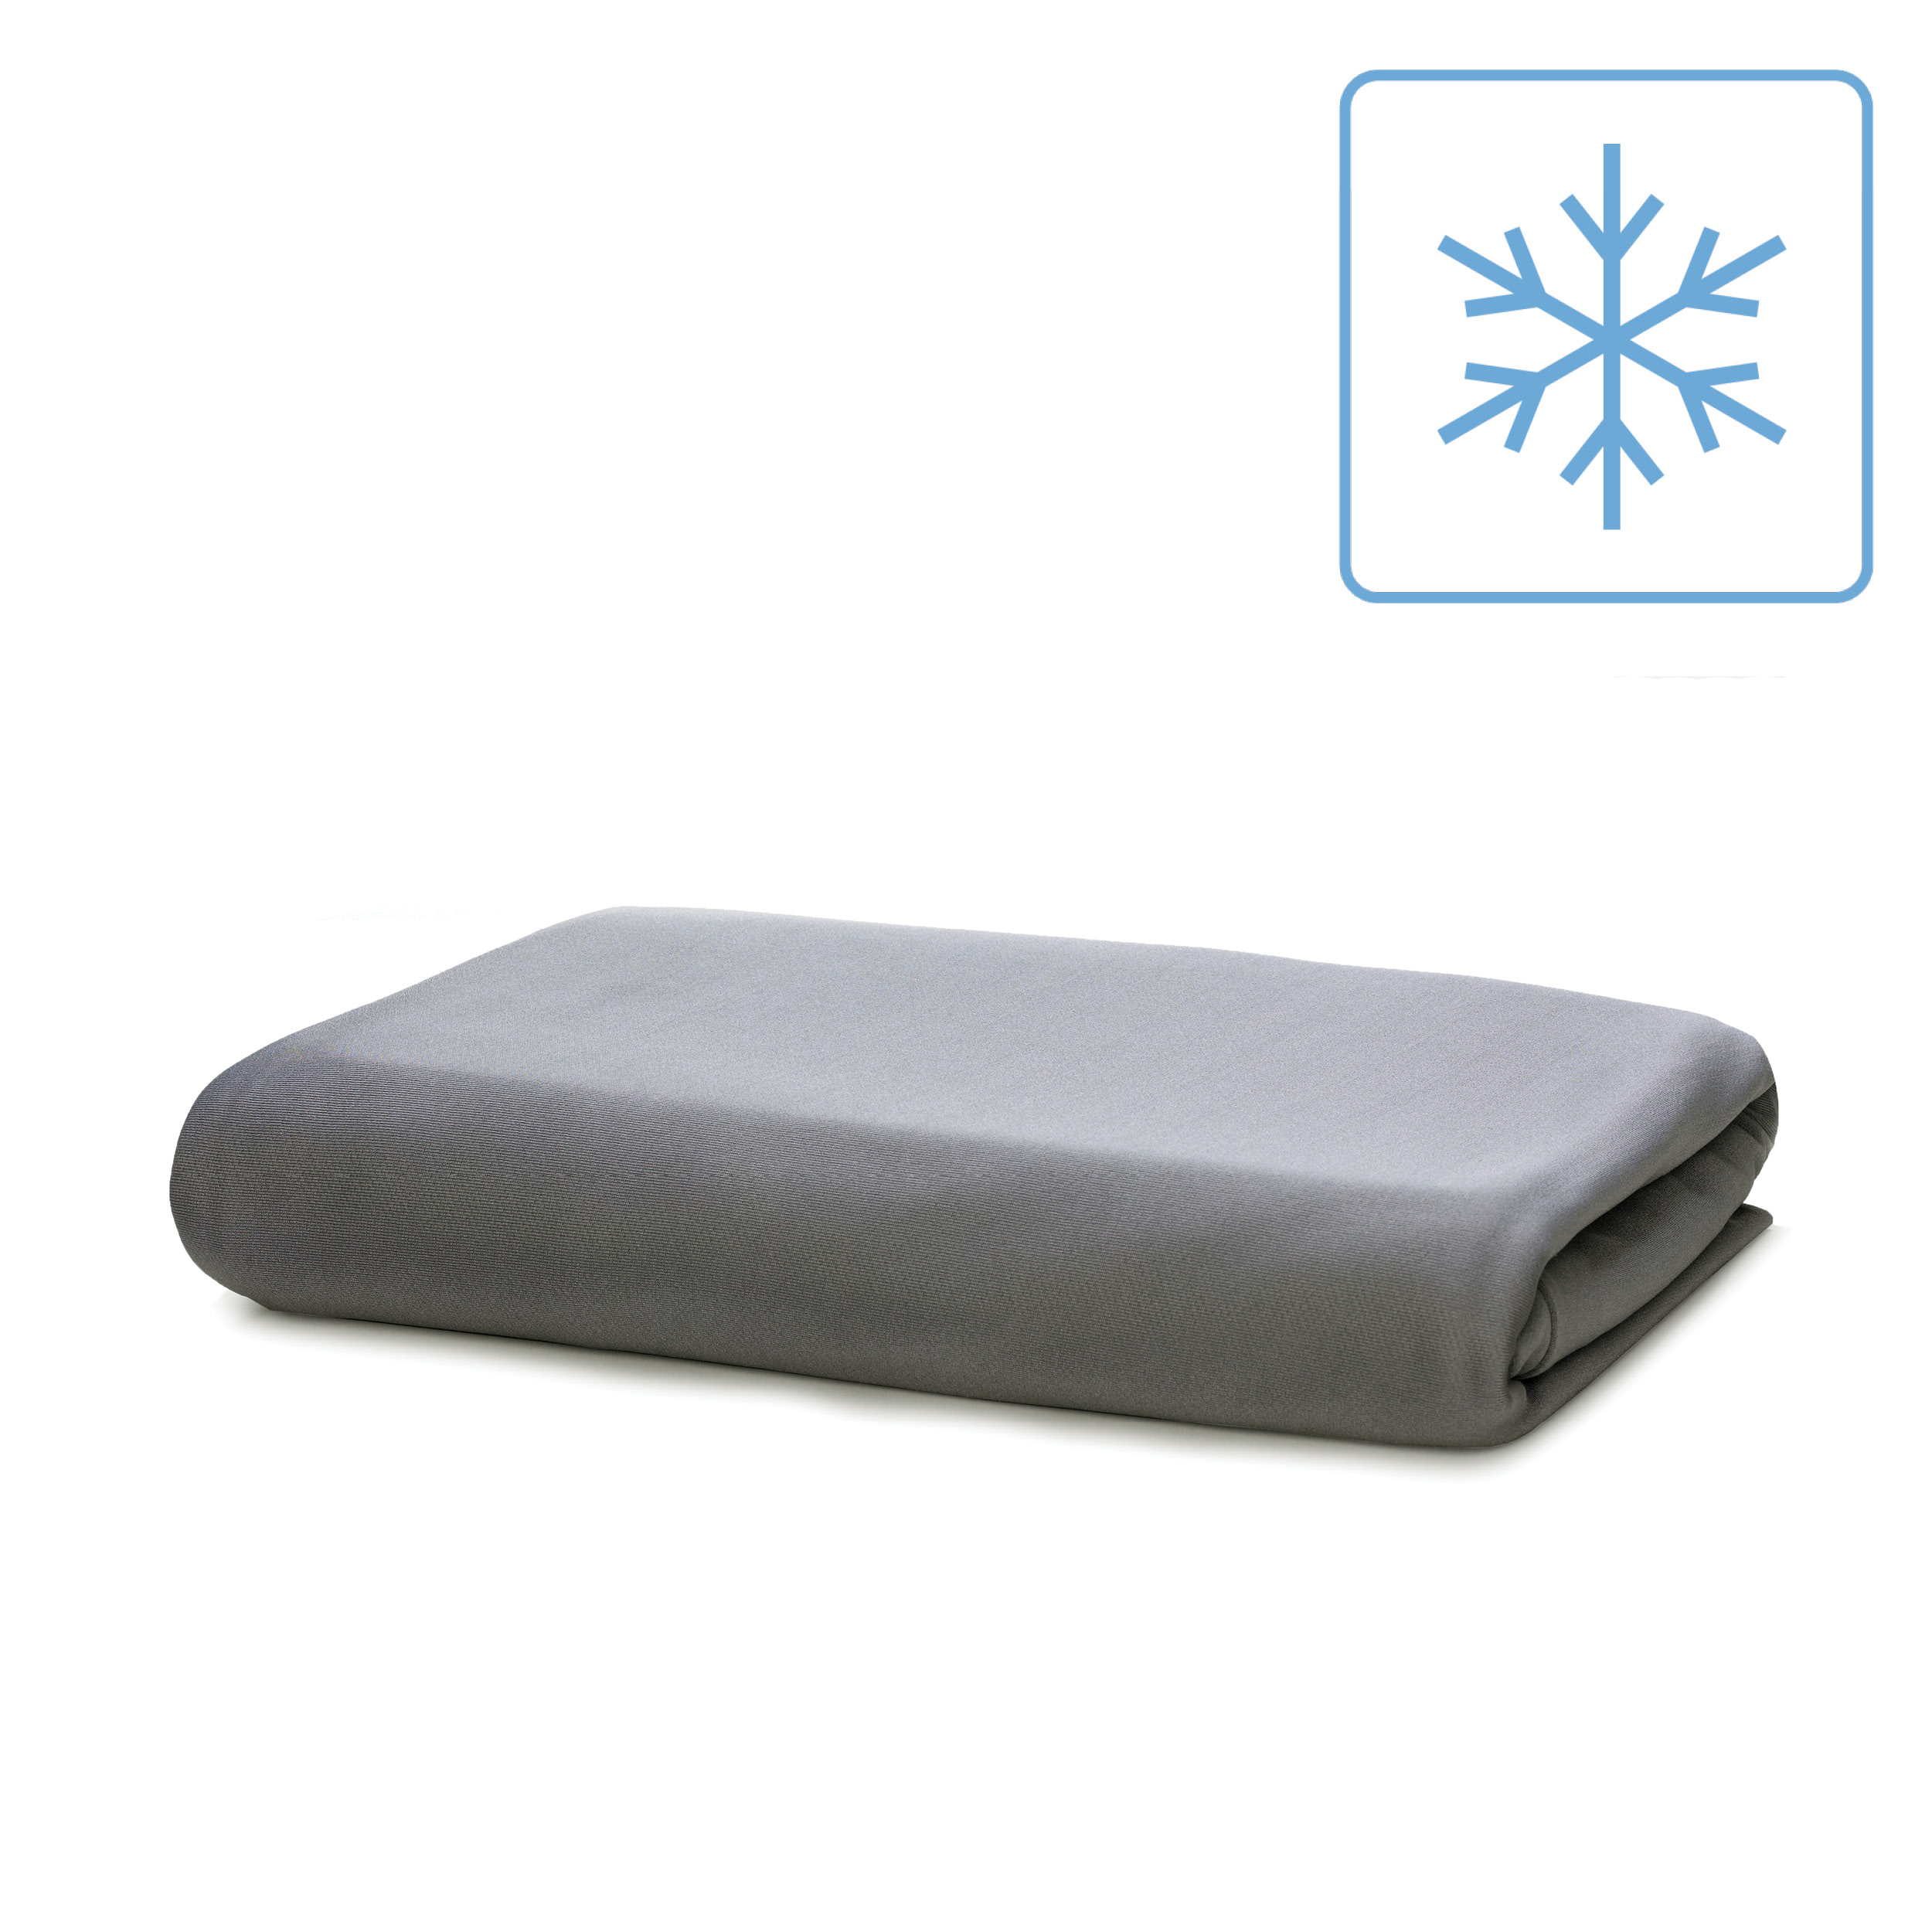 pillow cooling this copy cover foam memory soft contour sleep gel of with three cervical products comfort advanced fabric soundly promotes cold and bdbf